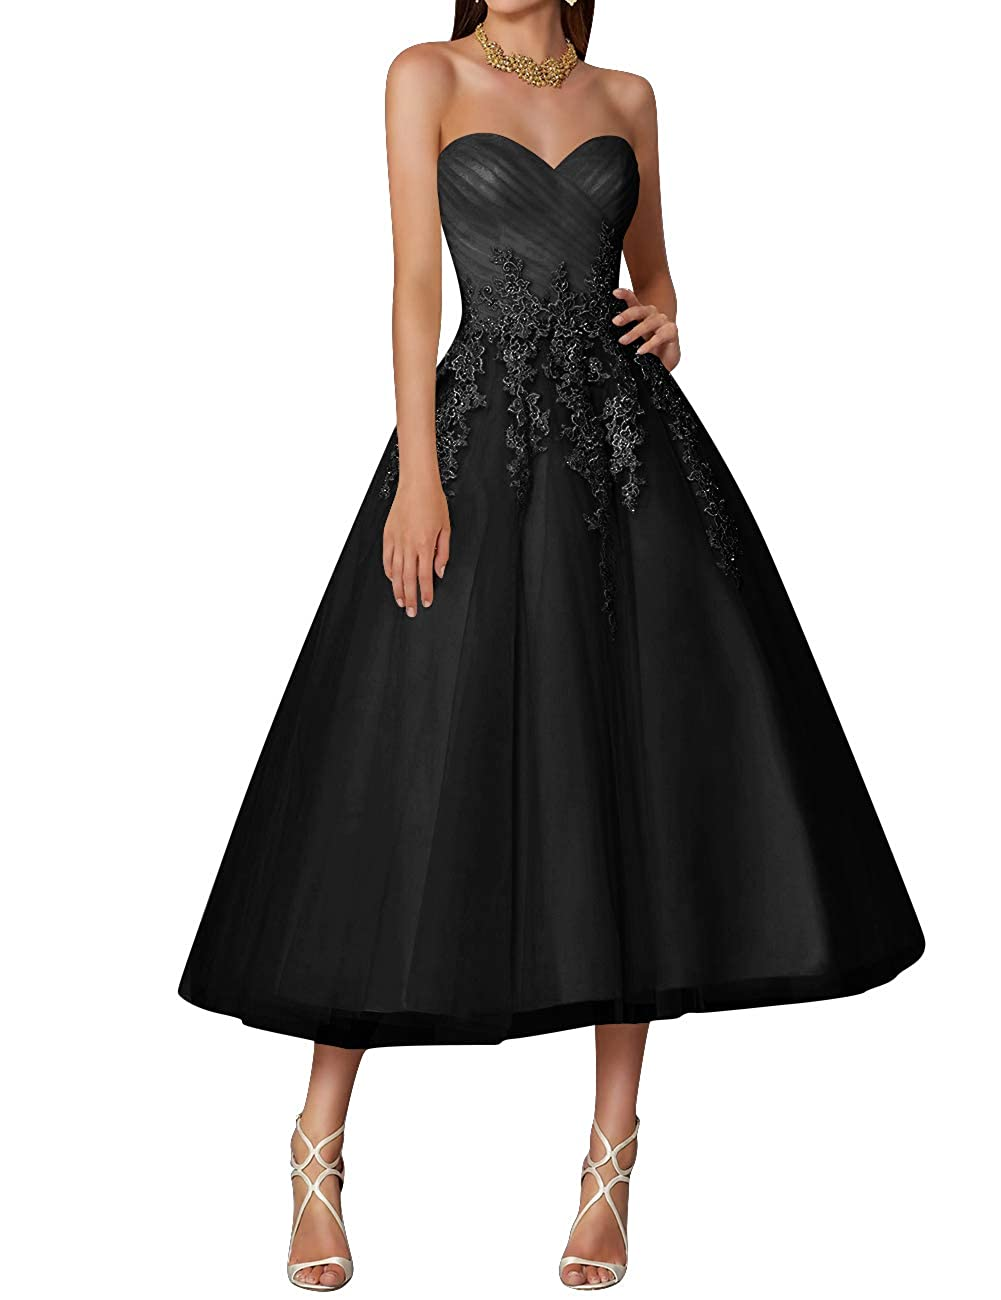 Black Wedding Dress Tulle Tea Length Prom Party Gowns Sweetheart Lace Vintage